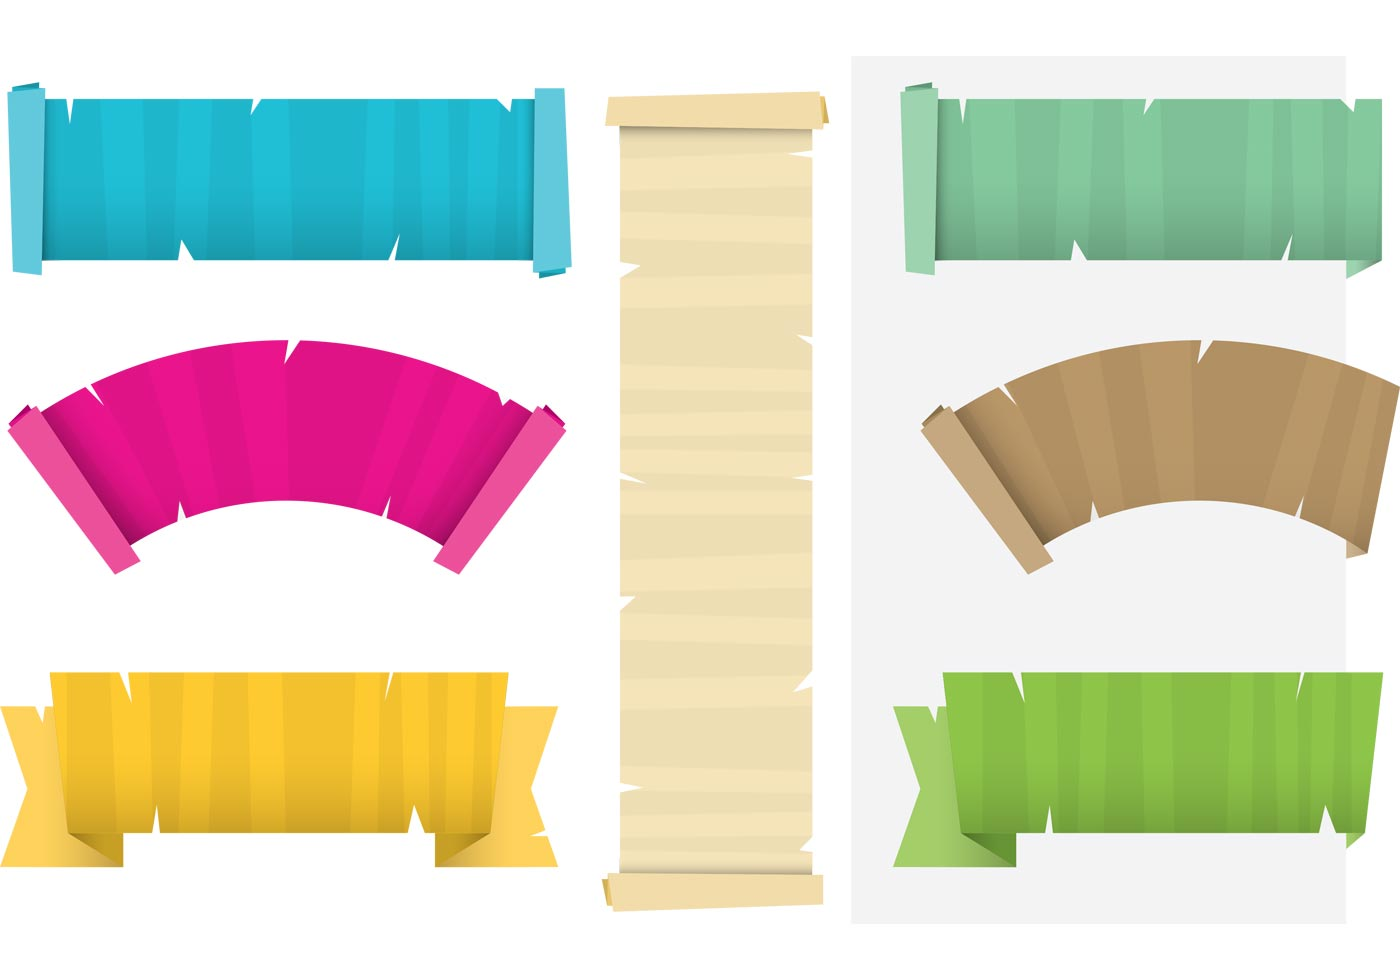 Colorful Papyrus Scrolled Paper Vectors - Download Free ...   1400 x 980 jpeg 54kB